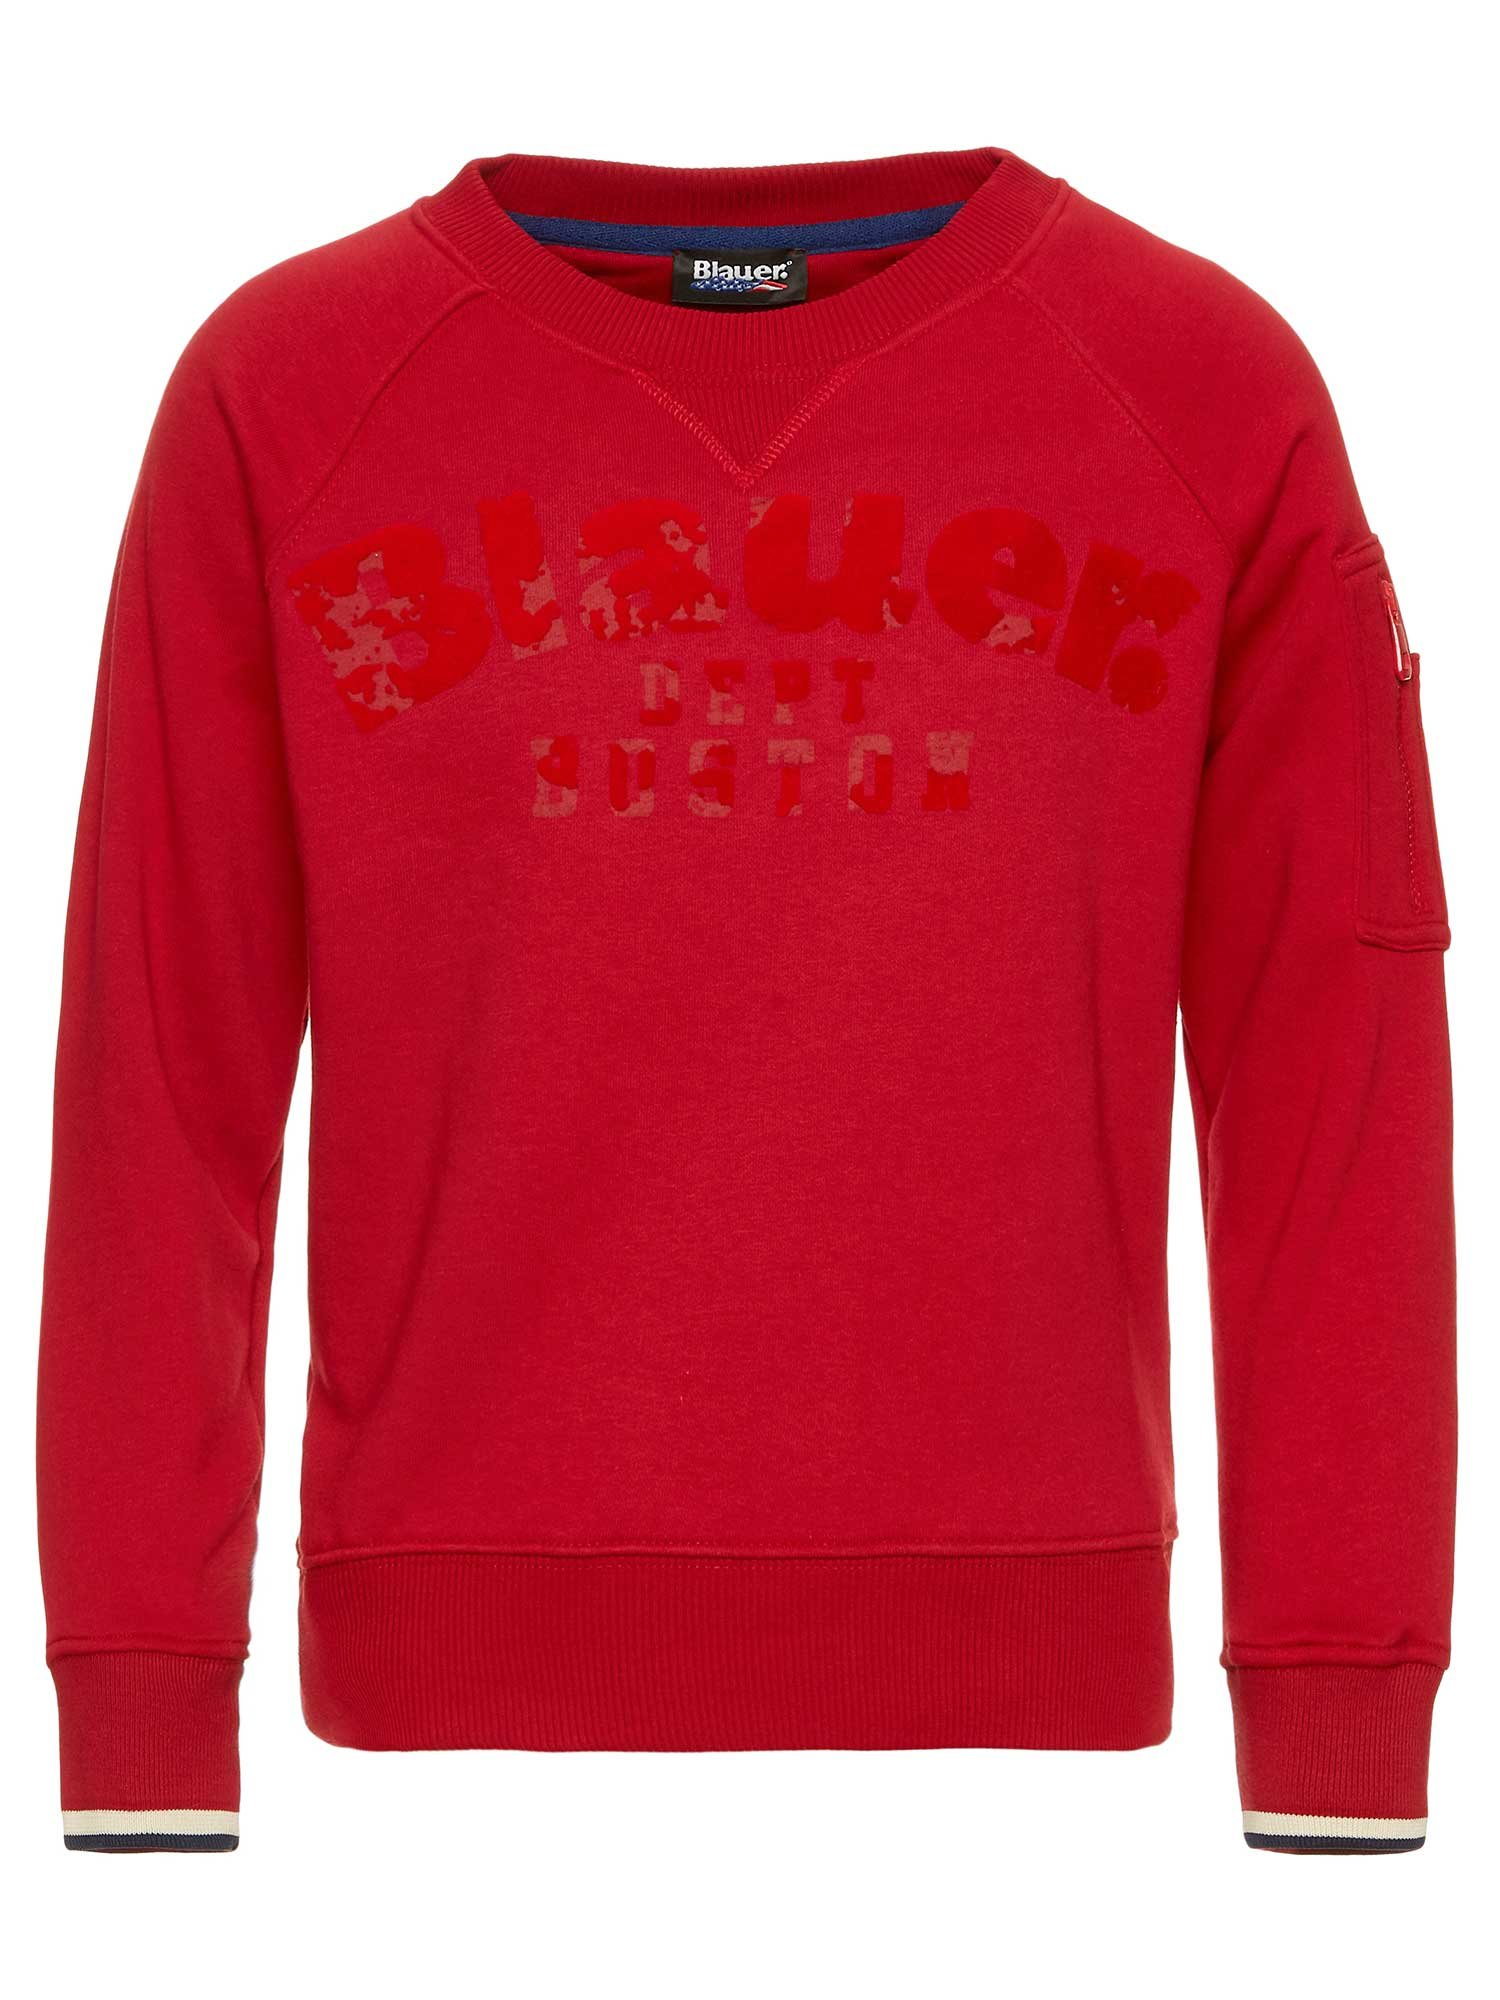 KID'S CREW NECK SWEATSHIRT - Blauer